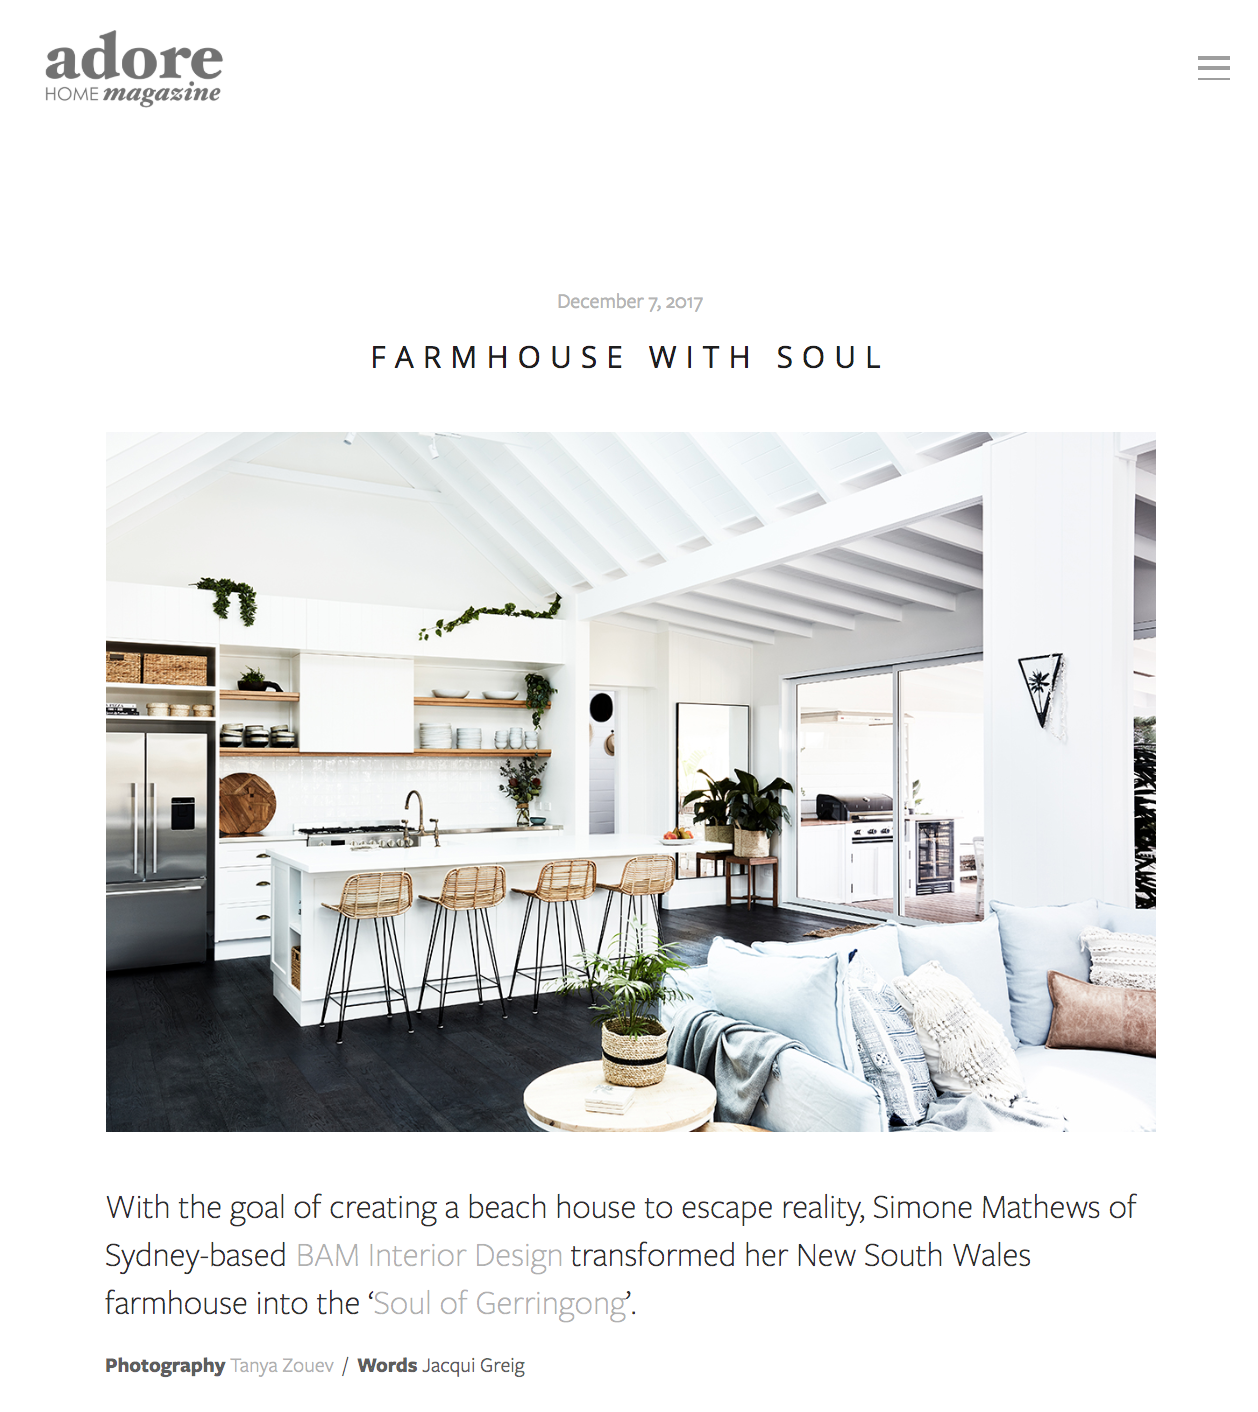 """ADORE MAGAZINE - """"This relaxed aesthetic was complemented by Simone's preference for bright and open spaces""""Click here to read the full article"""